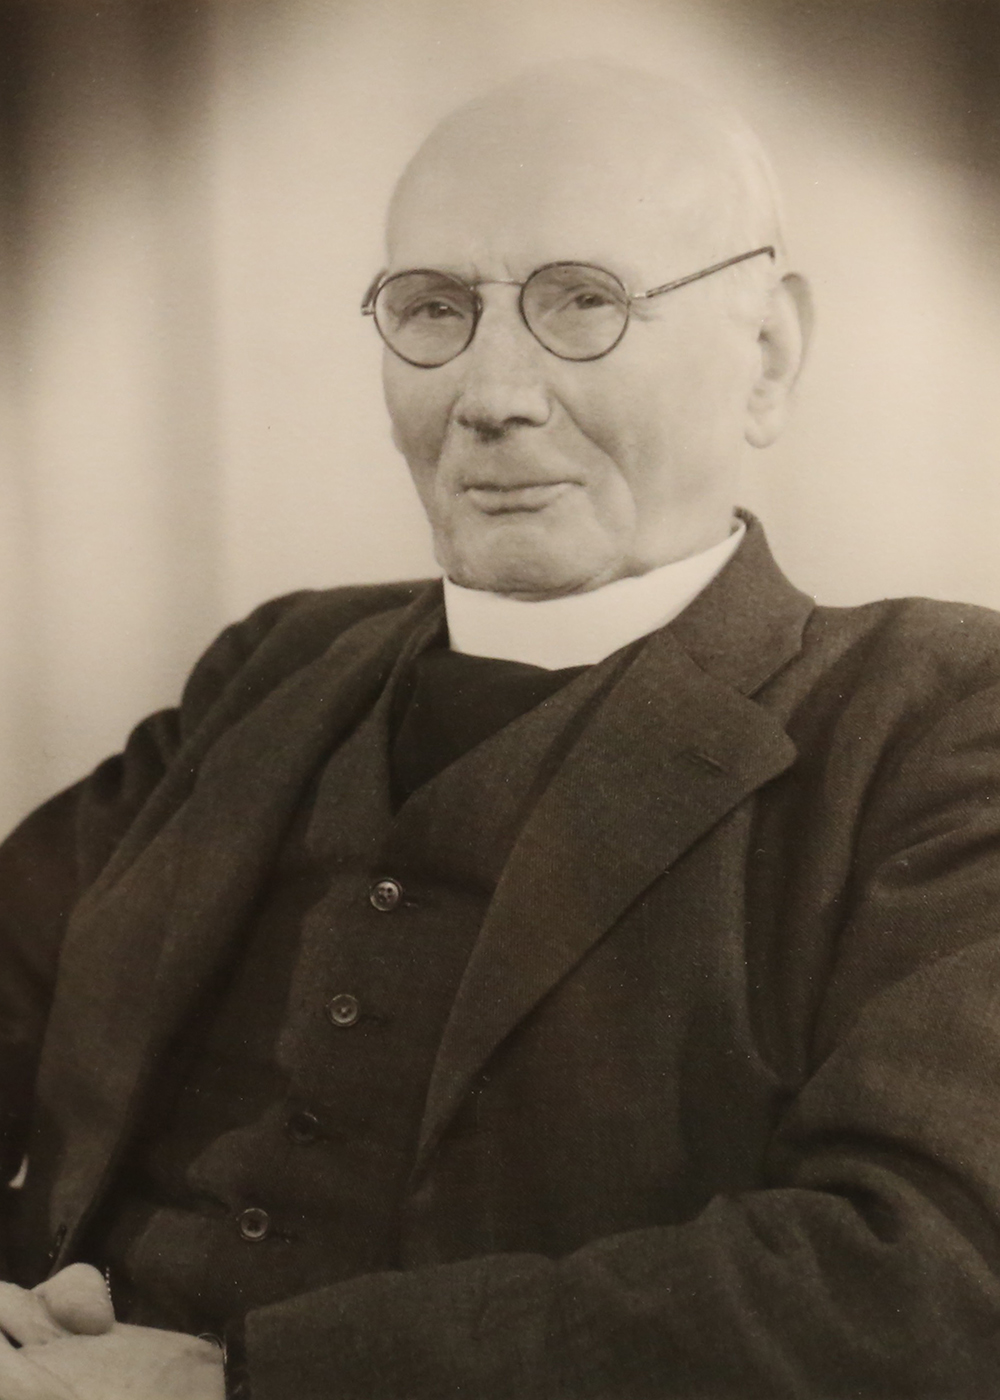 Rev. John Redmond, former rector of St Bride's Church.